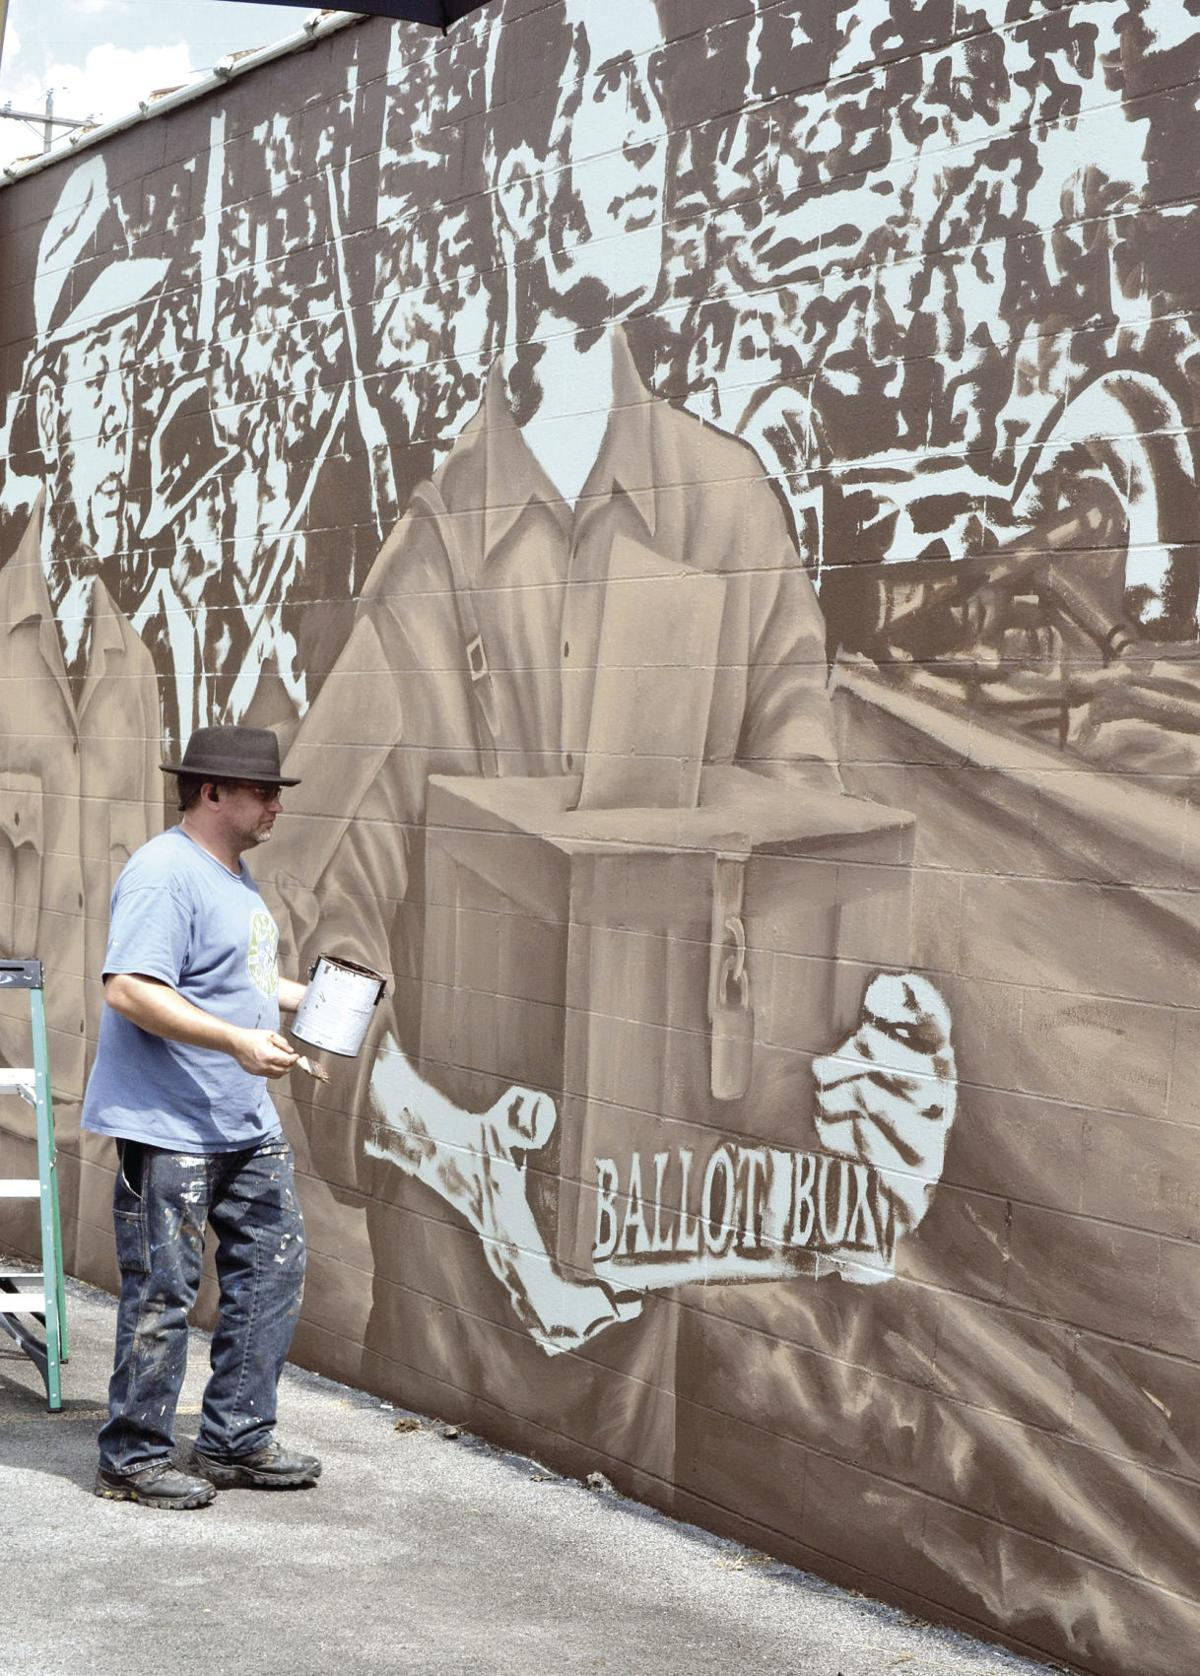 Muralist hopes to inspire deeper thought into what 'Battle' means